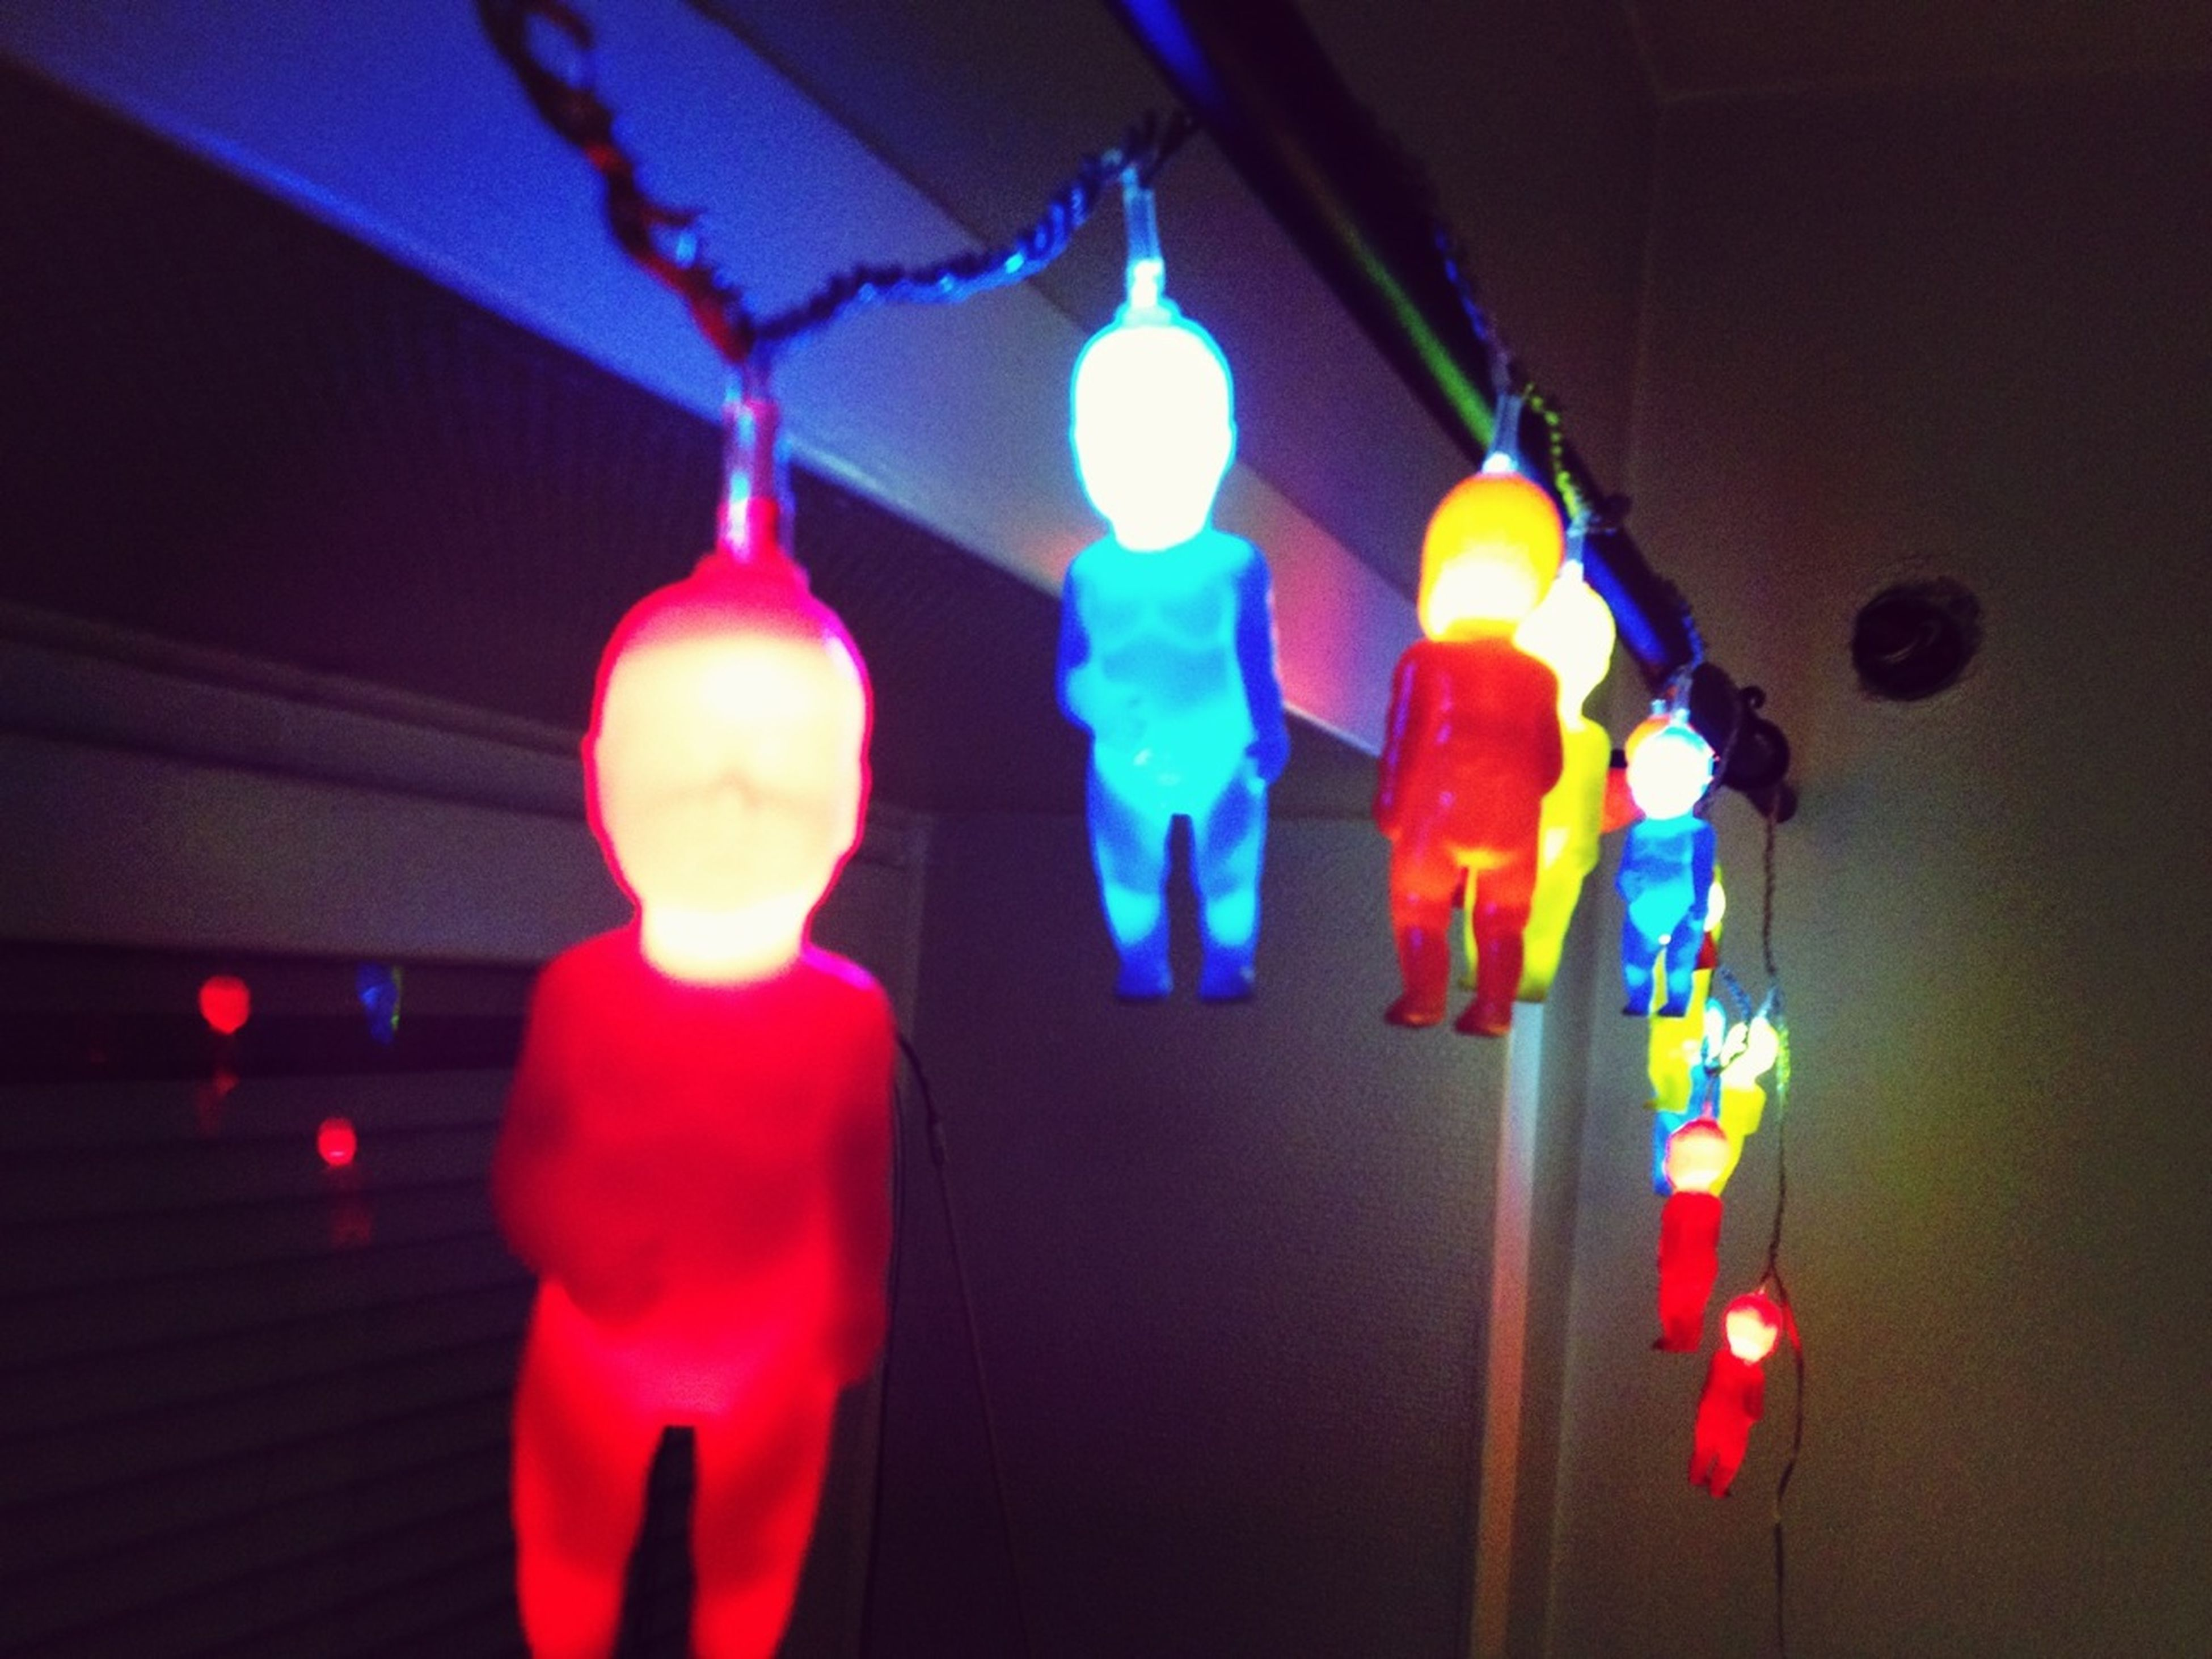 illuminated, indoors, lighting equipment, hanging, decoration, night, celebration, glowing, multi colored, electricity, candle, low angle view, light - natural phenomenon, lit, electric light, lantern, close-up, christmas, christmas decoration, decor